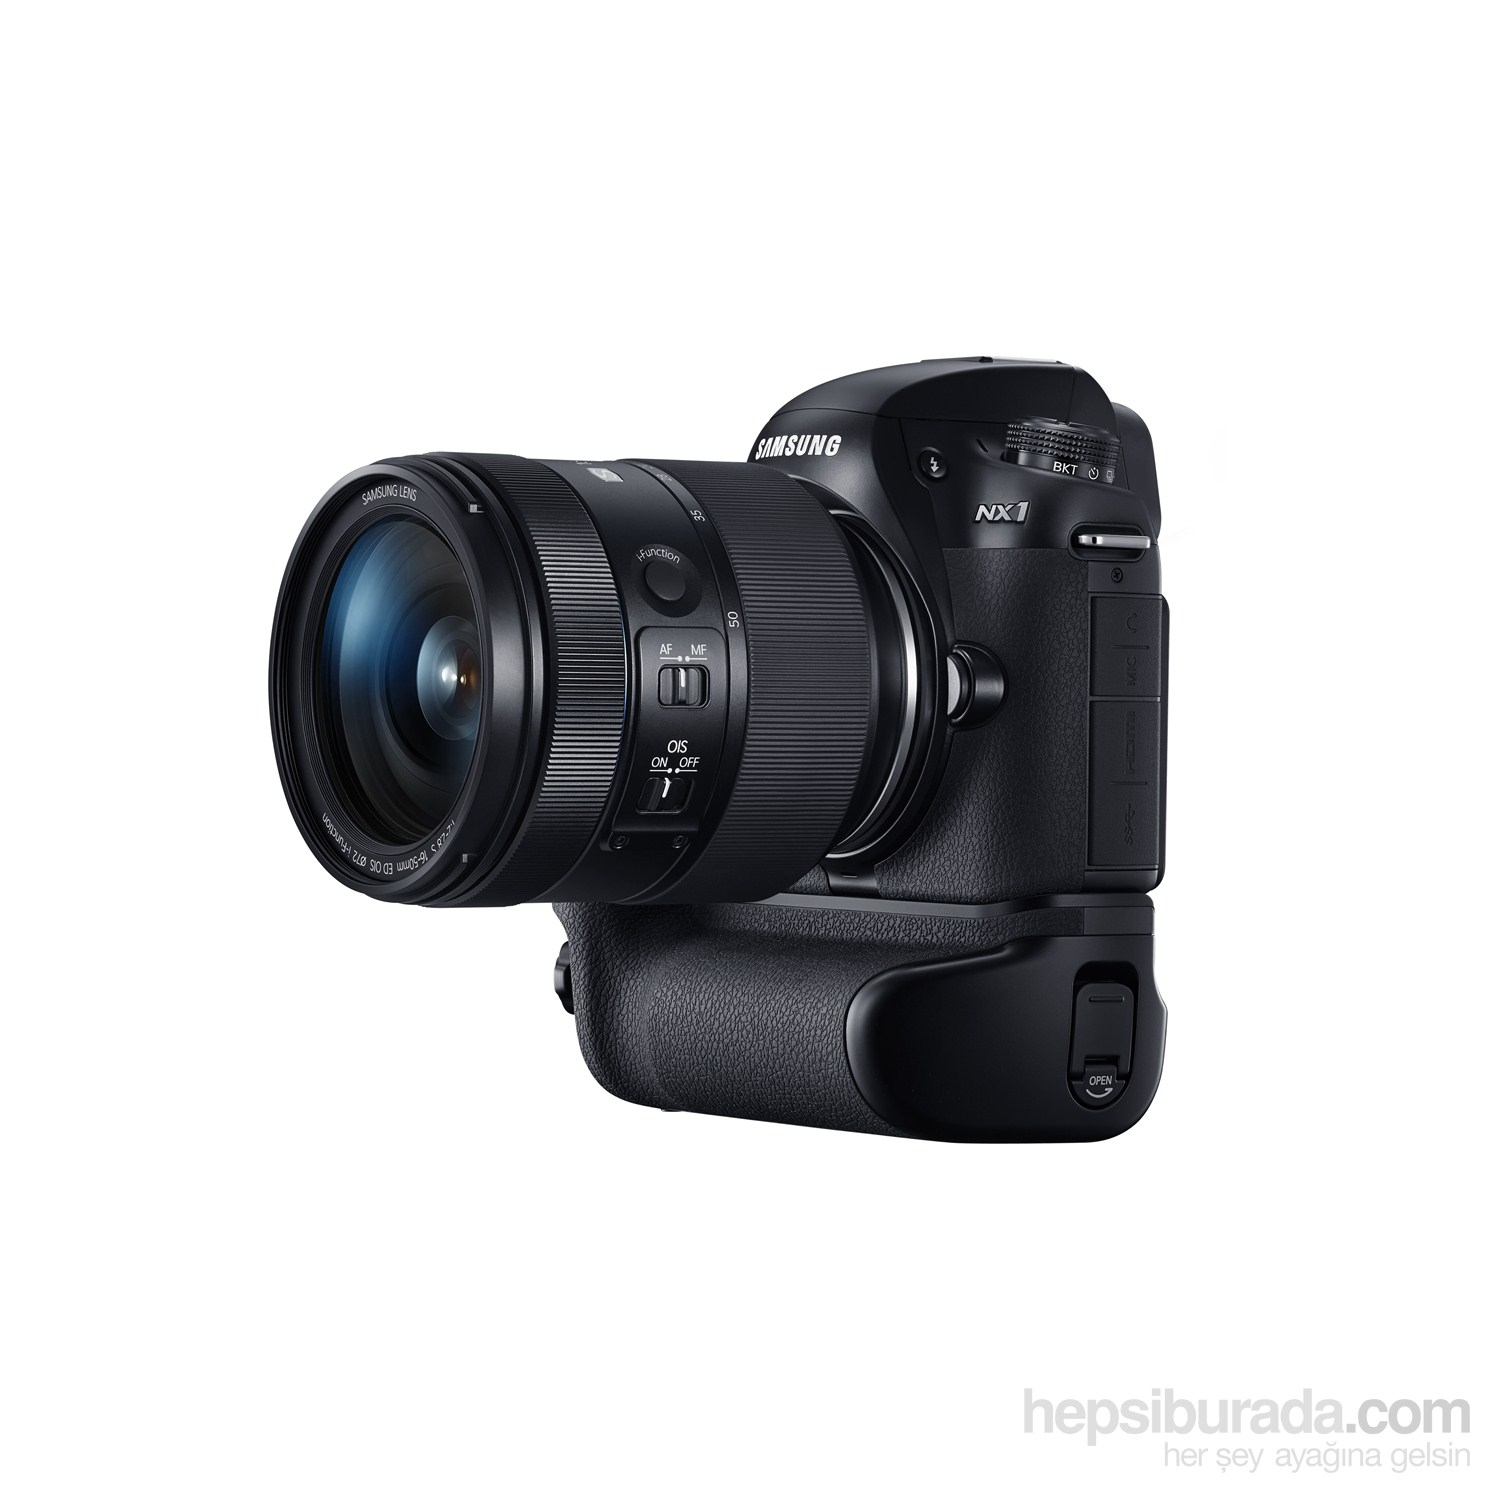 Samsung NX1 16-50 f/2-2.8 lens + Battery Grip 28 Mp 4K/UHD Video Aynasız DSLR Fotoğraf Makinesi